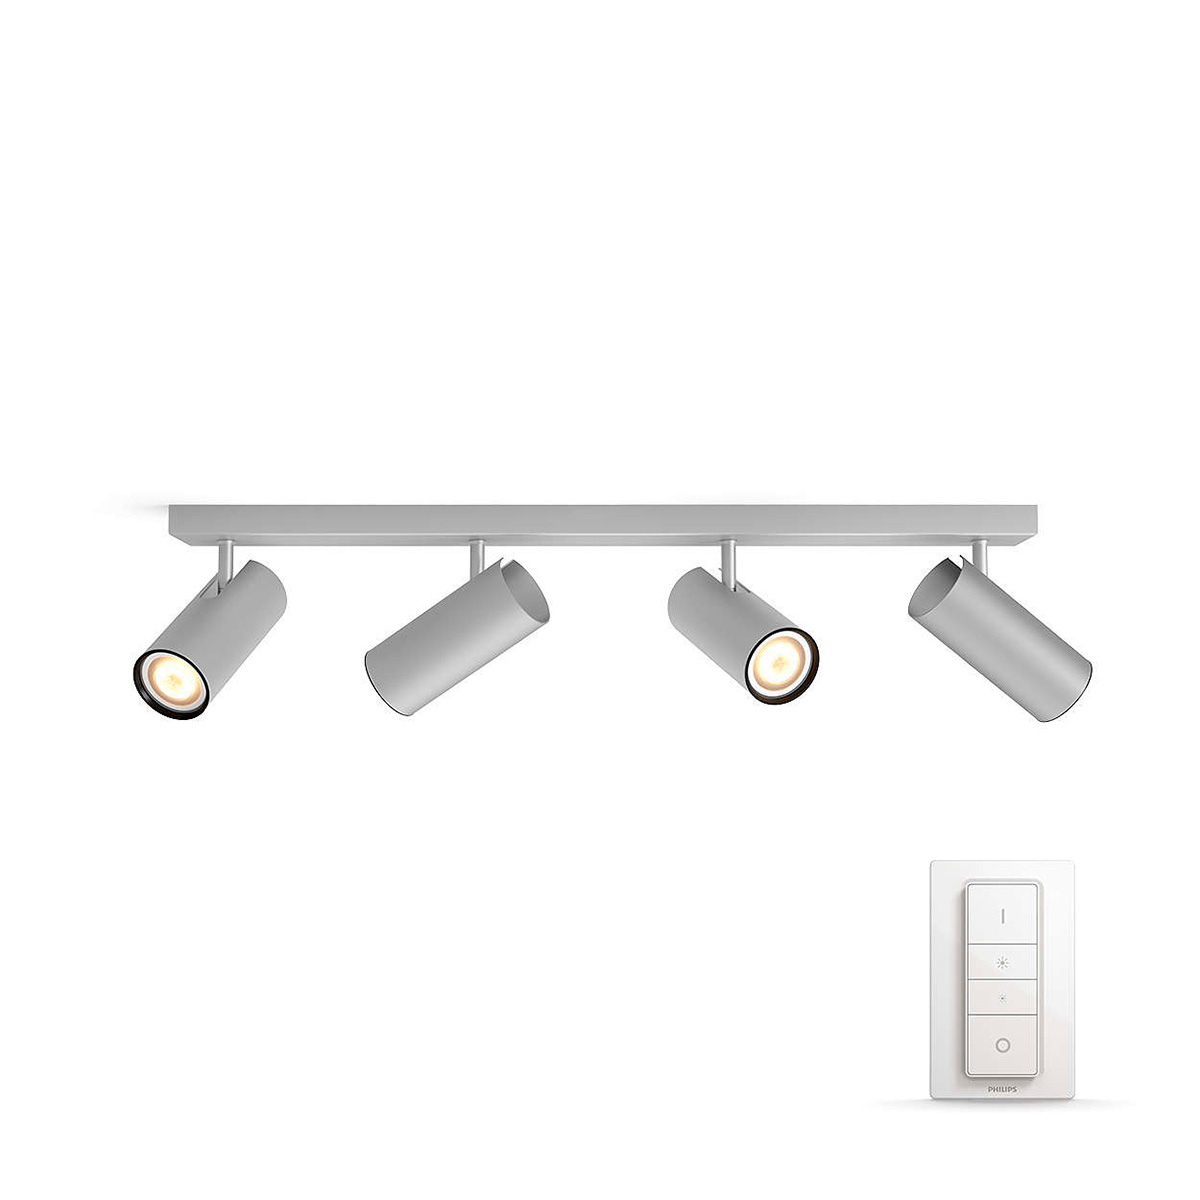 Billede af Philips Connected spot - White ambiance - Buratto - Aluminium